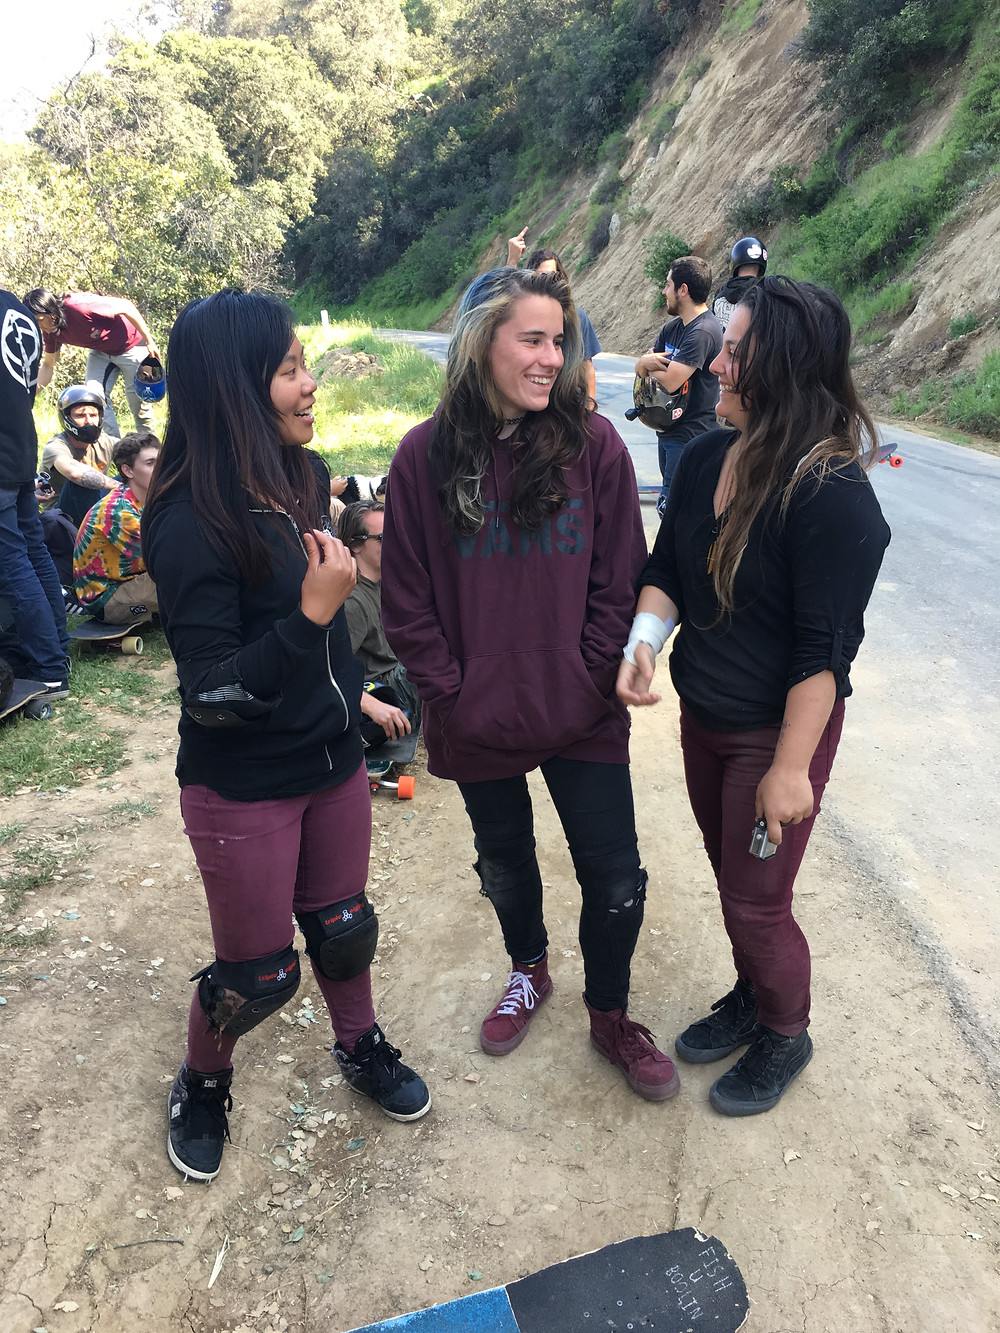 There were about 10 girls and a good chunk of us had an unplanned dress code. We killed the maroon and black combo. Photo by Joe Gutkowski